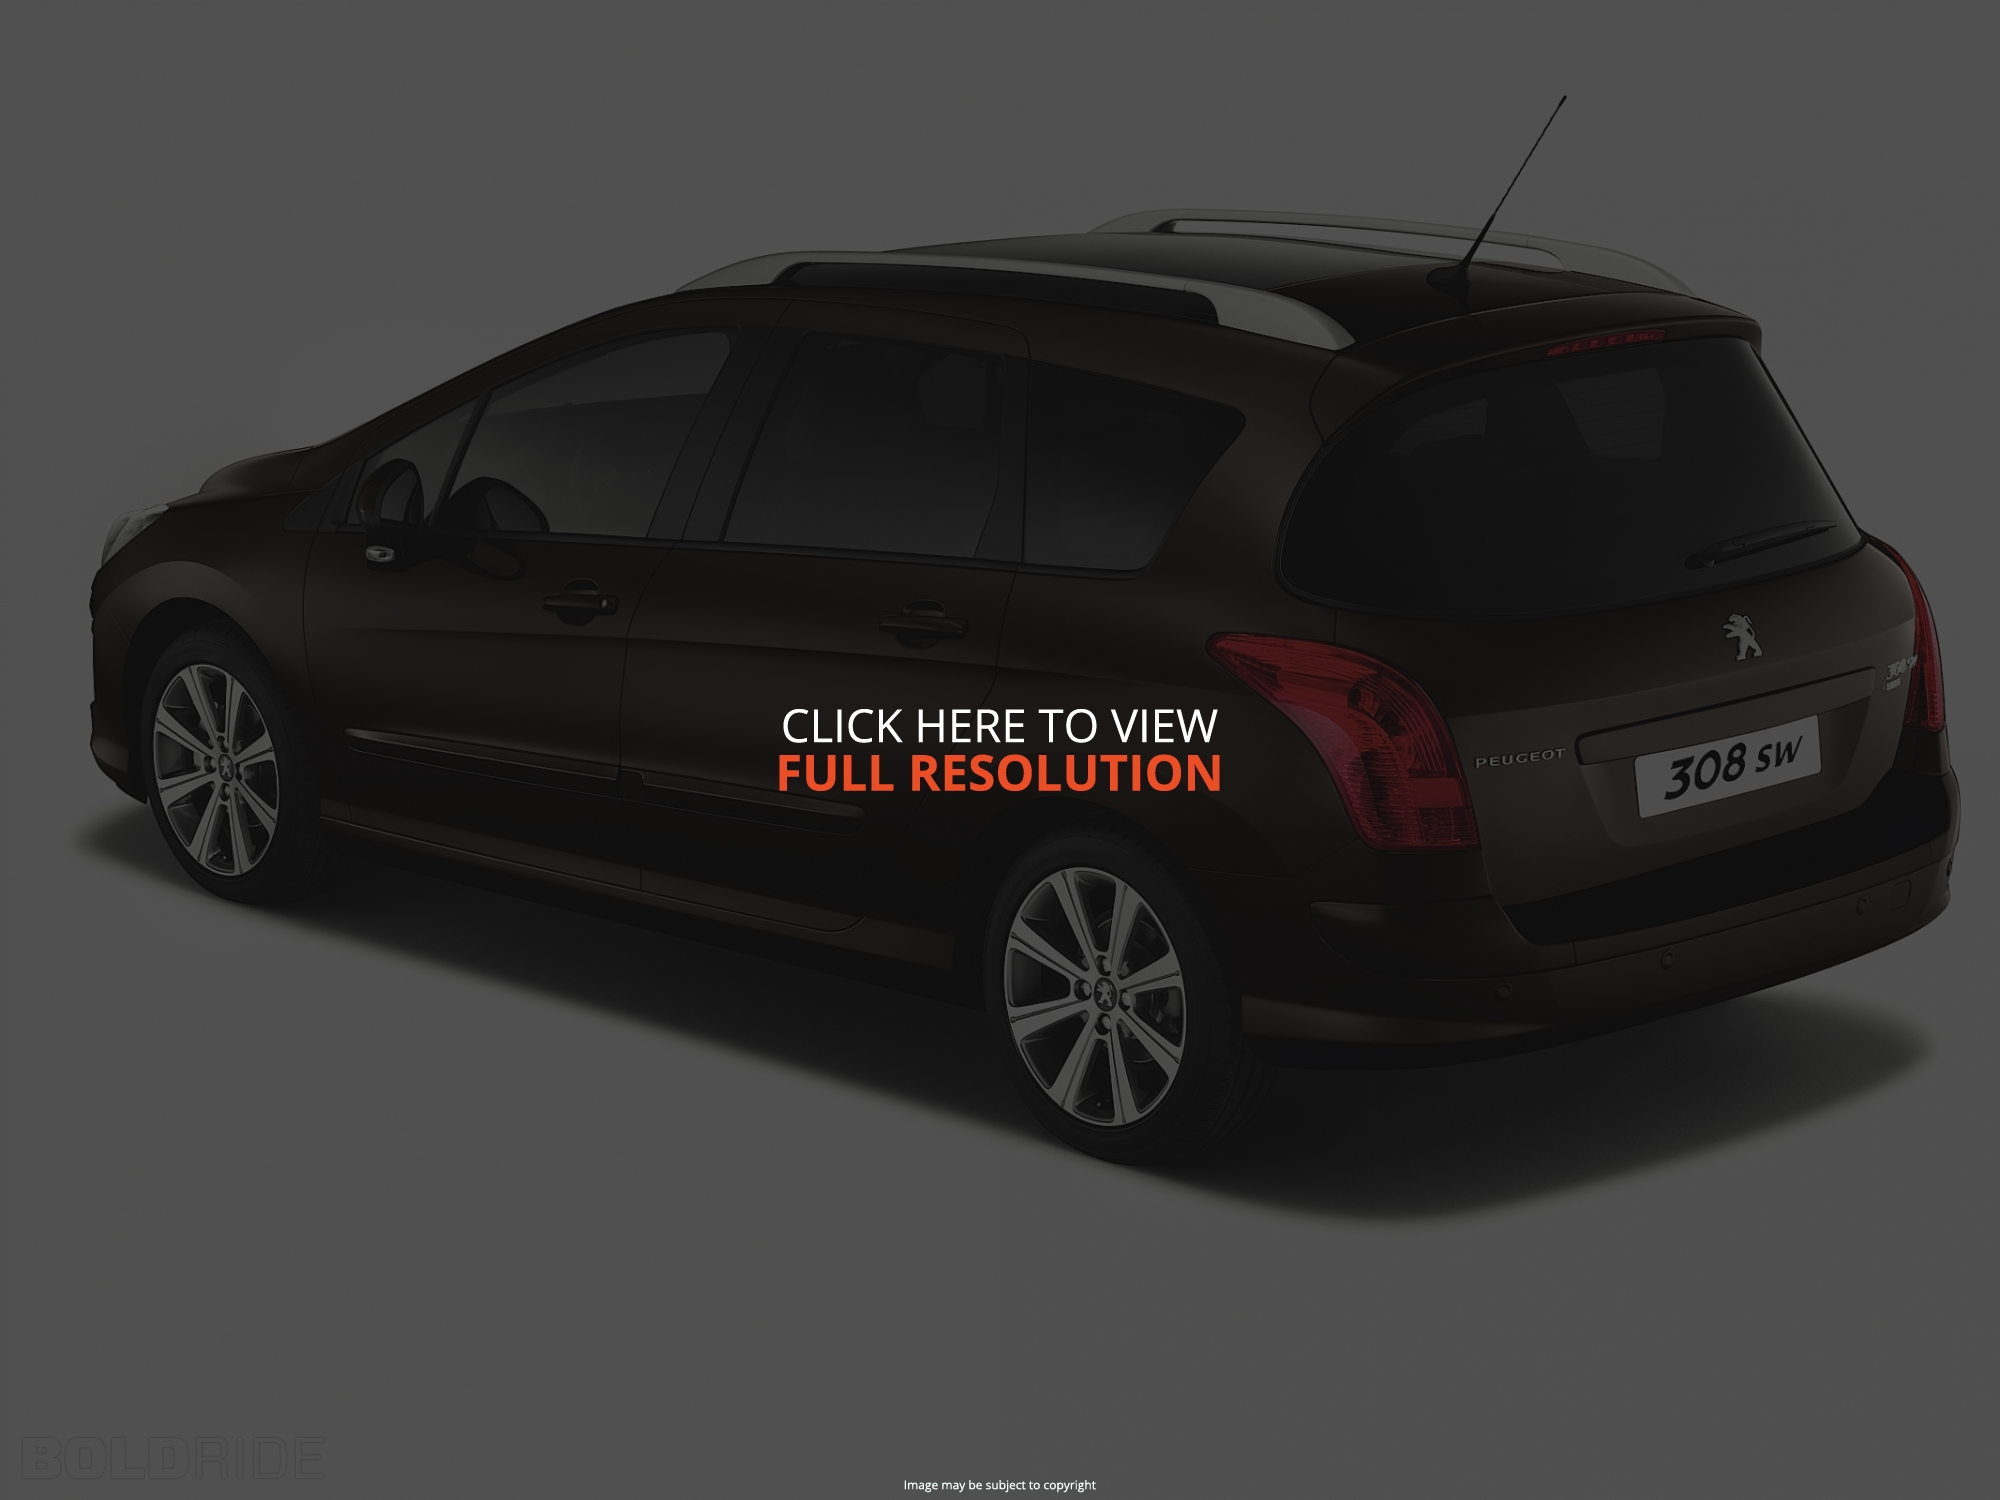 2012 peugeot 308 sw pictures information and specs auto. Black Bedroom Furniture Sets. Home Design Ideas